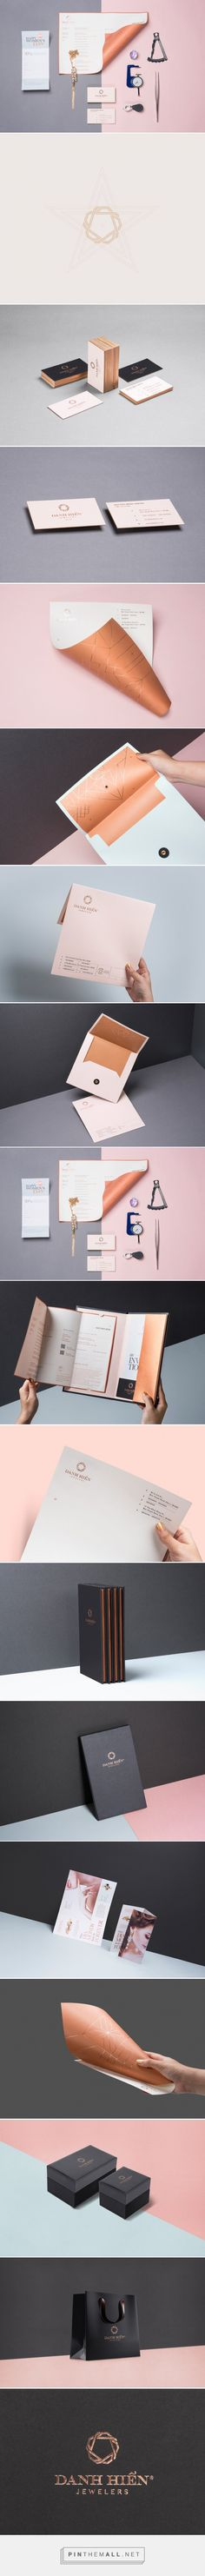 Elegant Branding Design for Danh Hien Jewelers - created via https://pinthemall.net